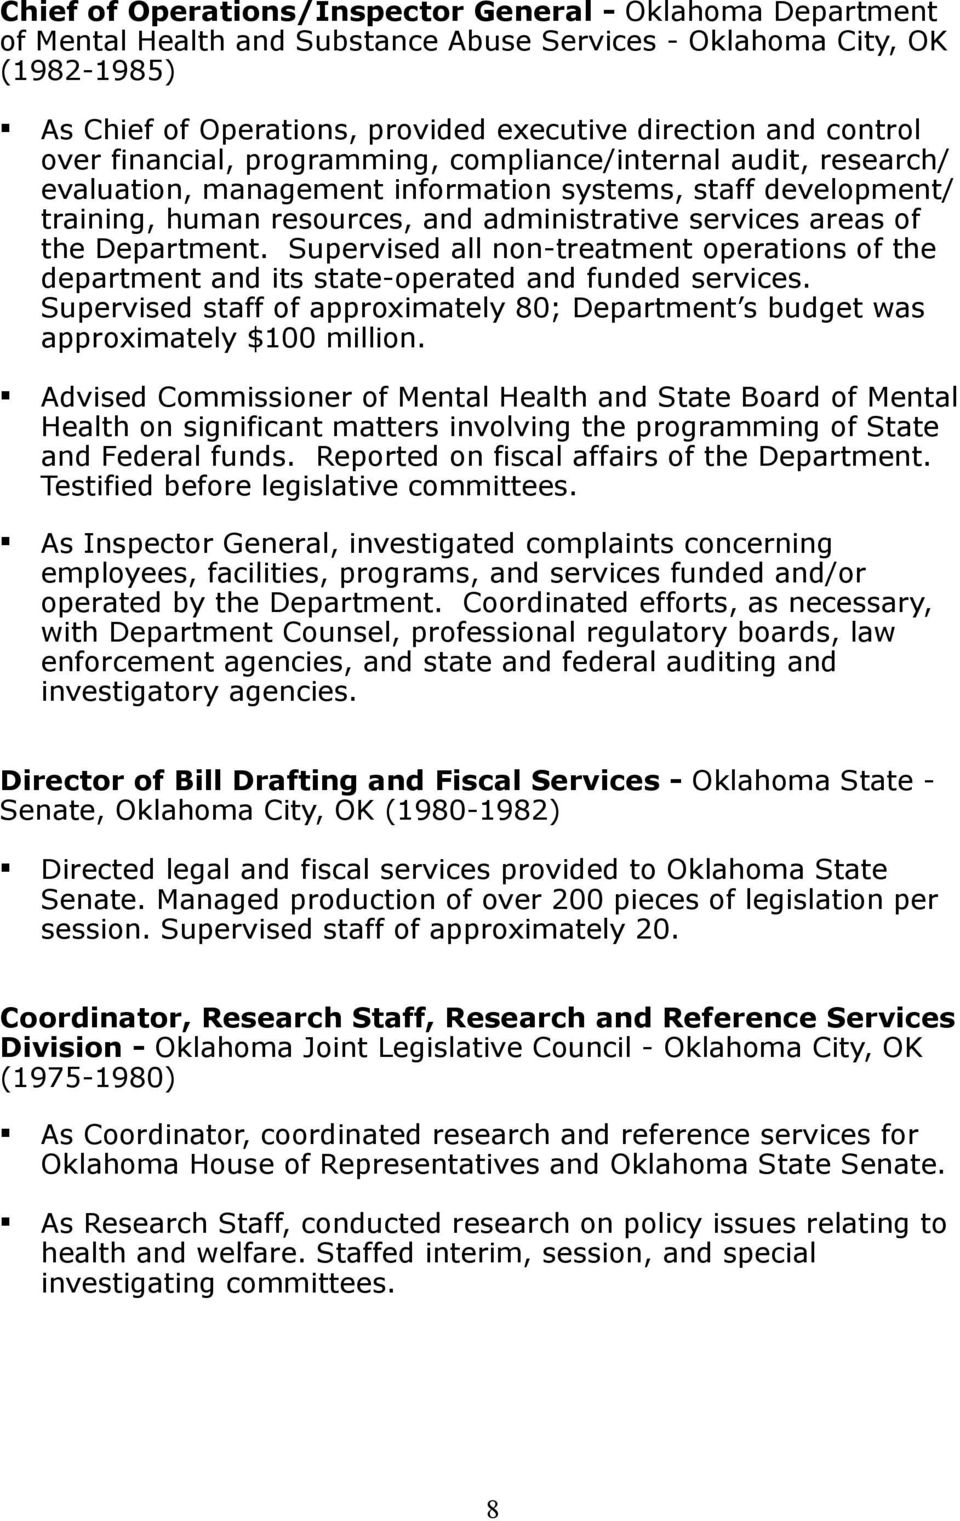 of the Department. Supervised all non-treatment operations of the department and its state-operated and funded services.